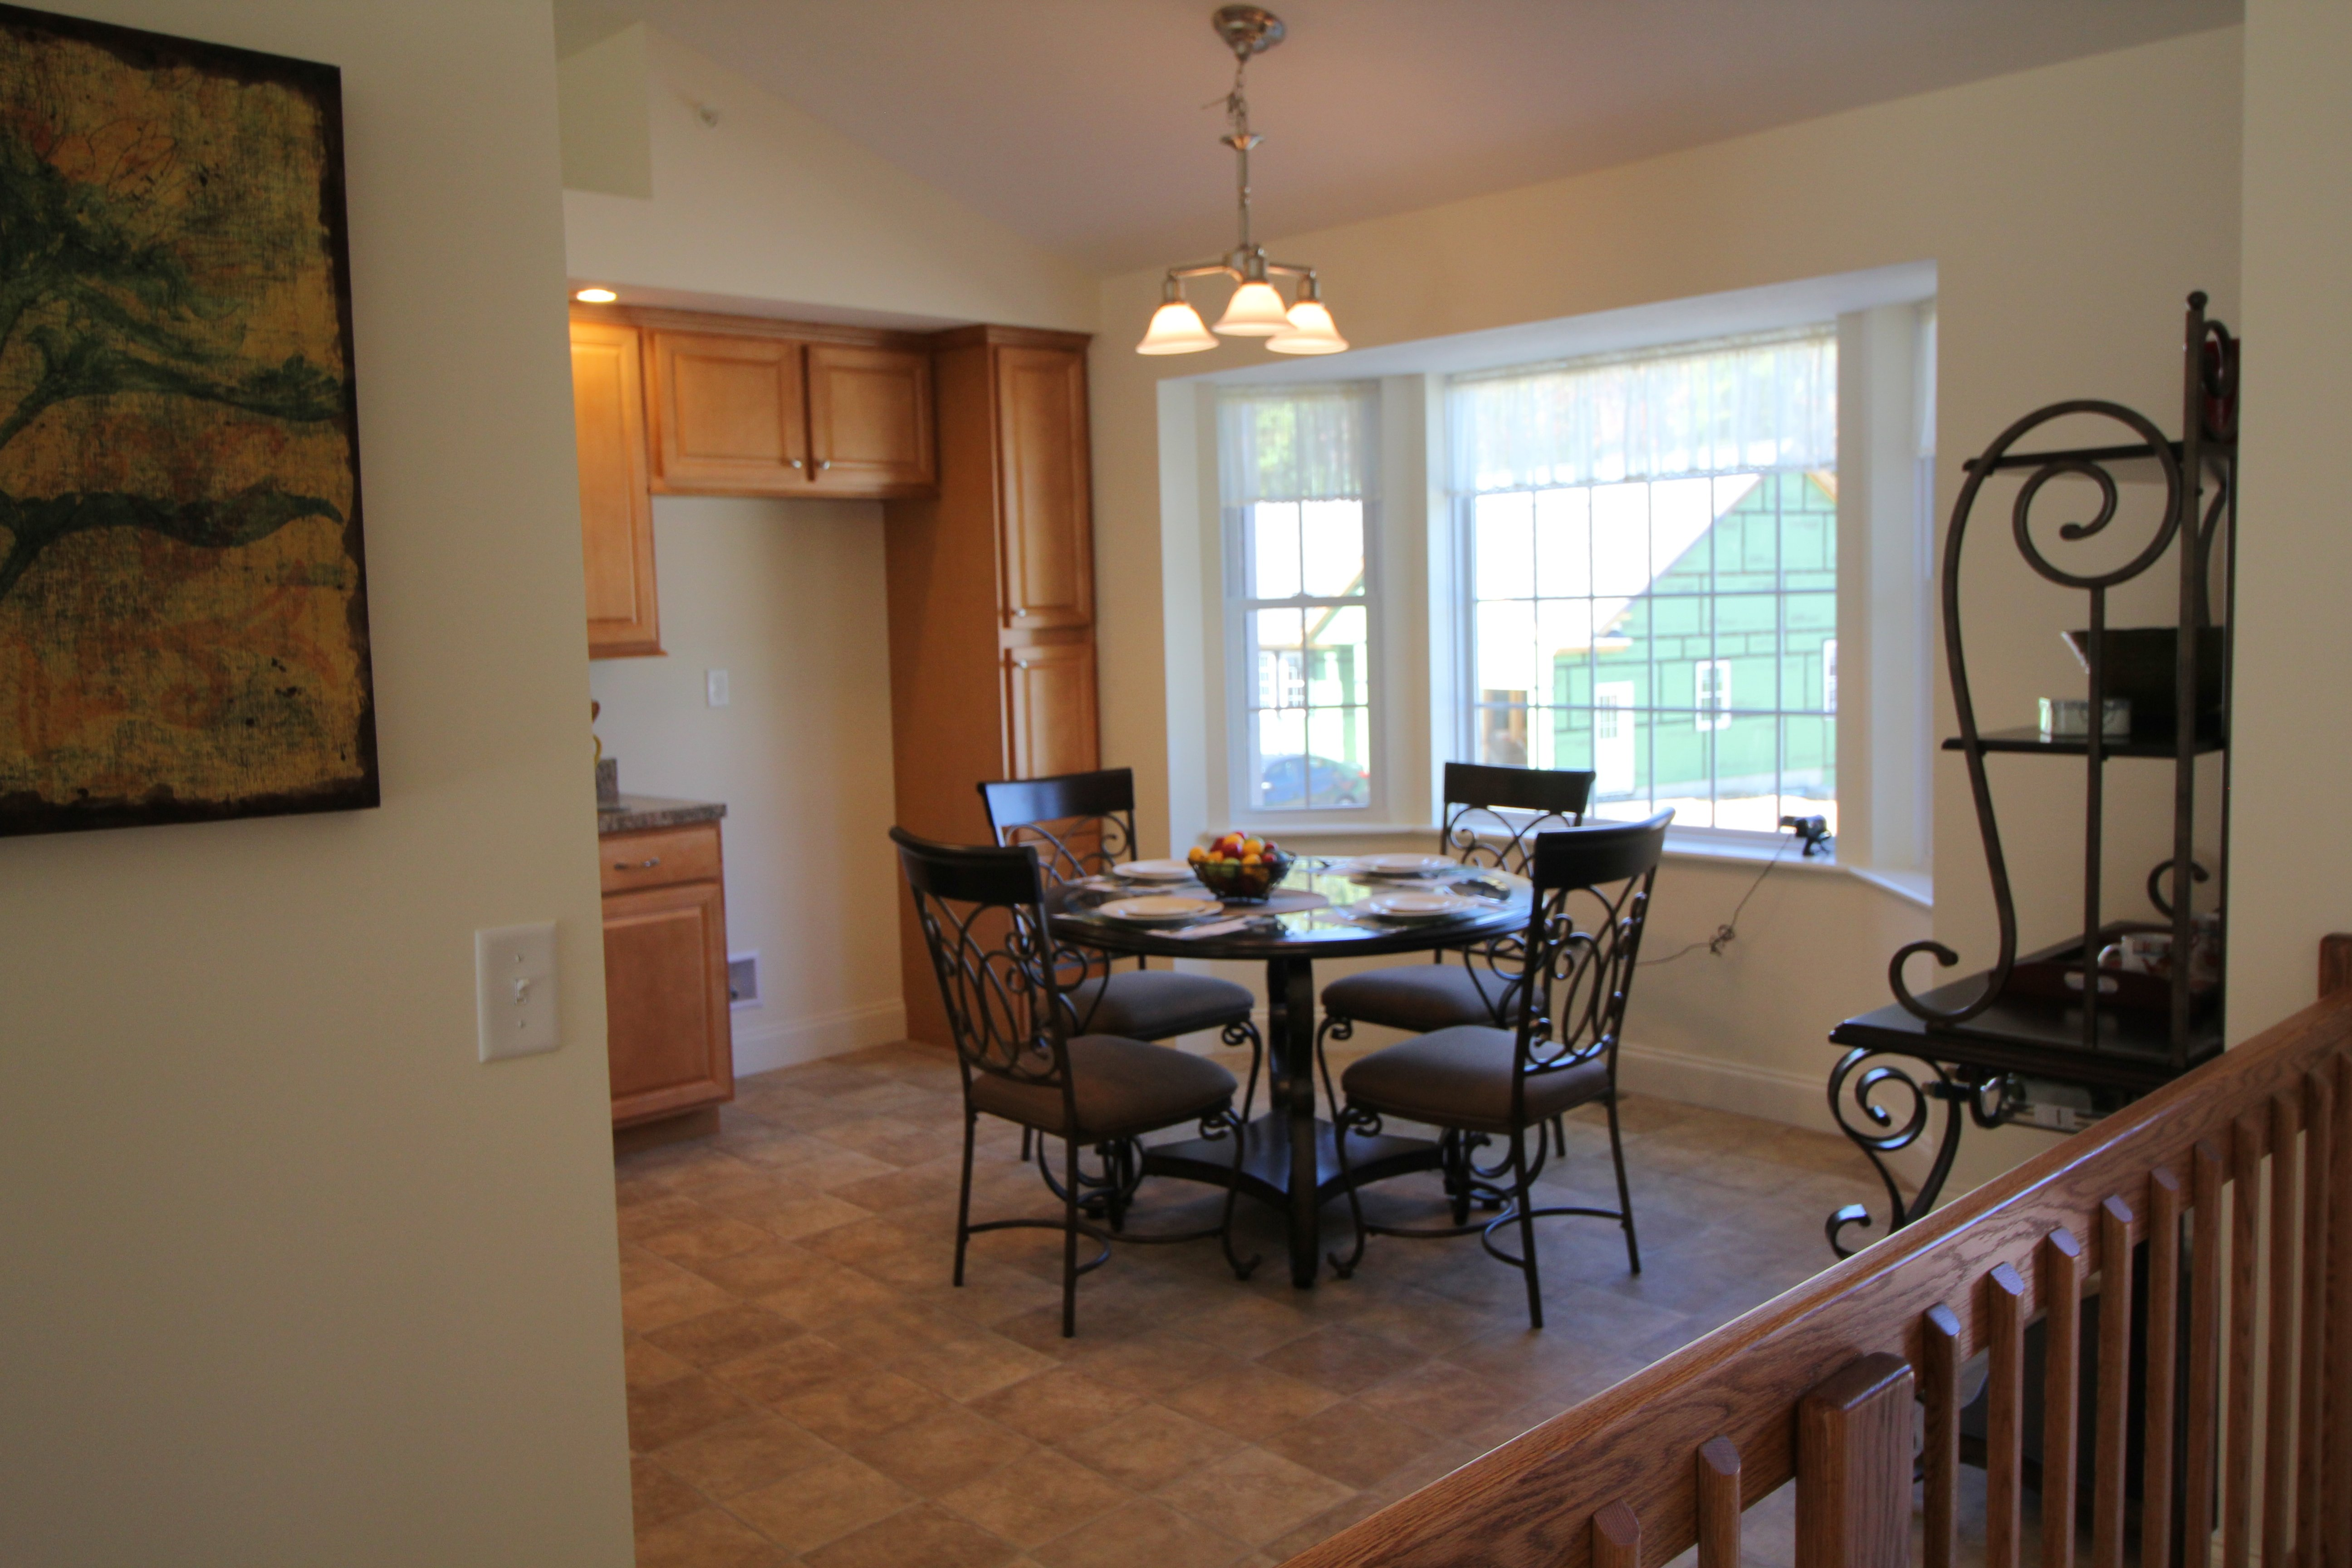 New Homes at Sawmill Ridge in Atkinson NH | Lewis Builders Development